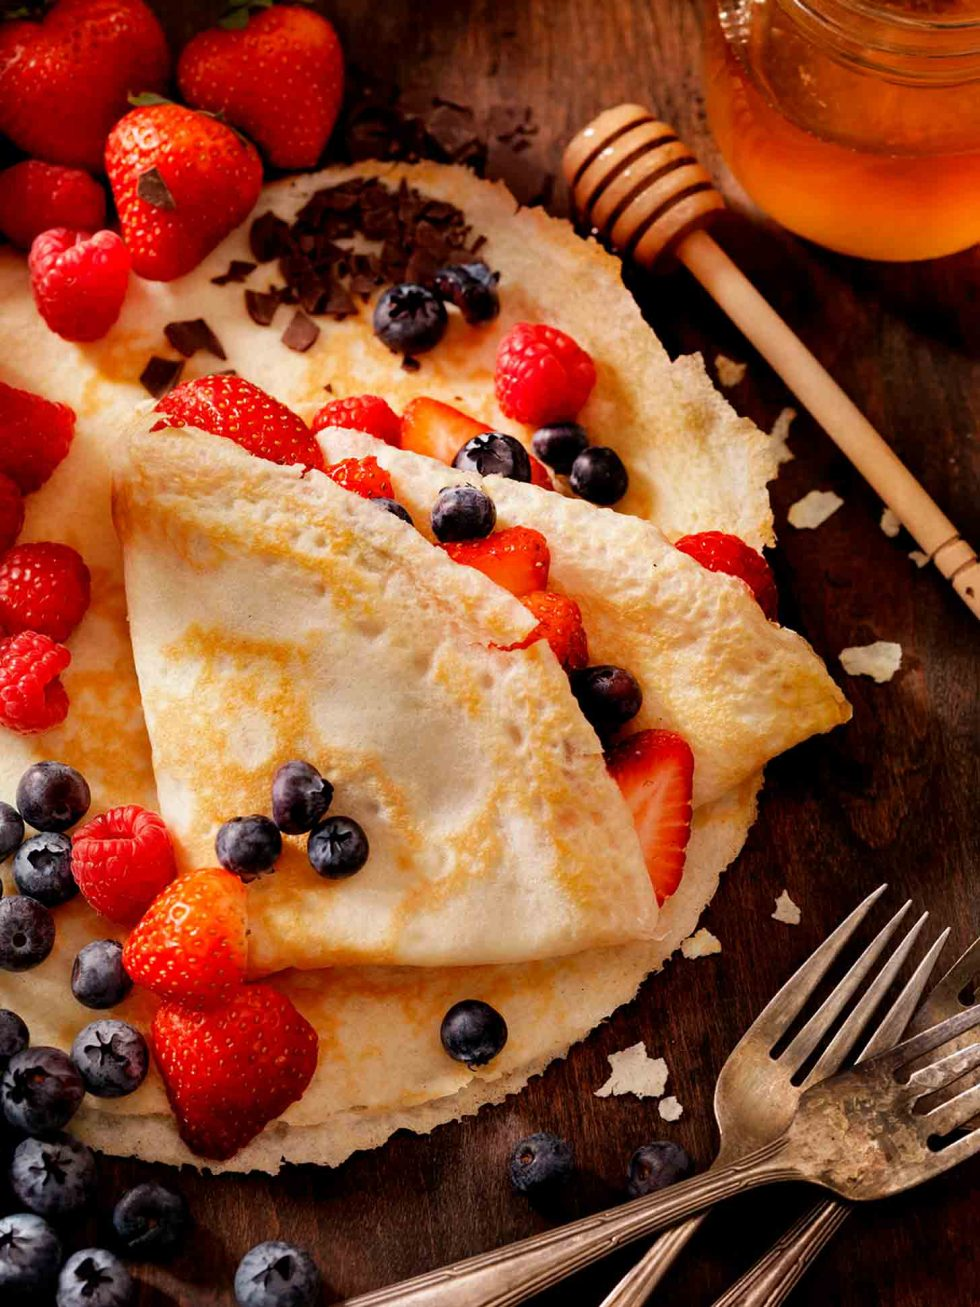 Calgary Food Photography. Crepes and berries on rustic backdrop.